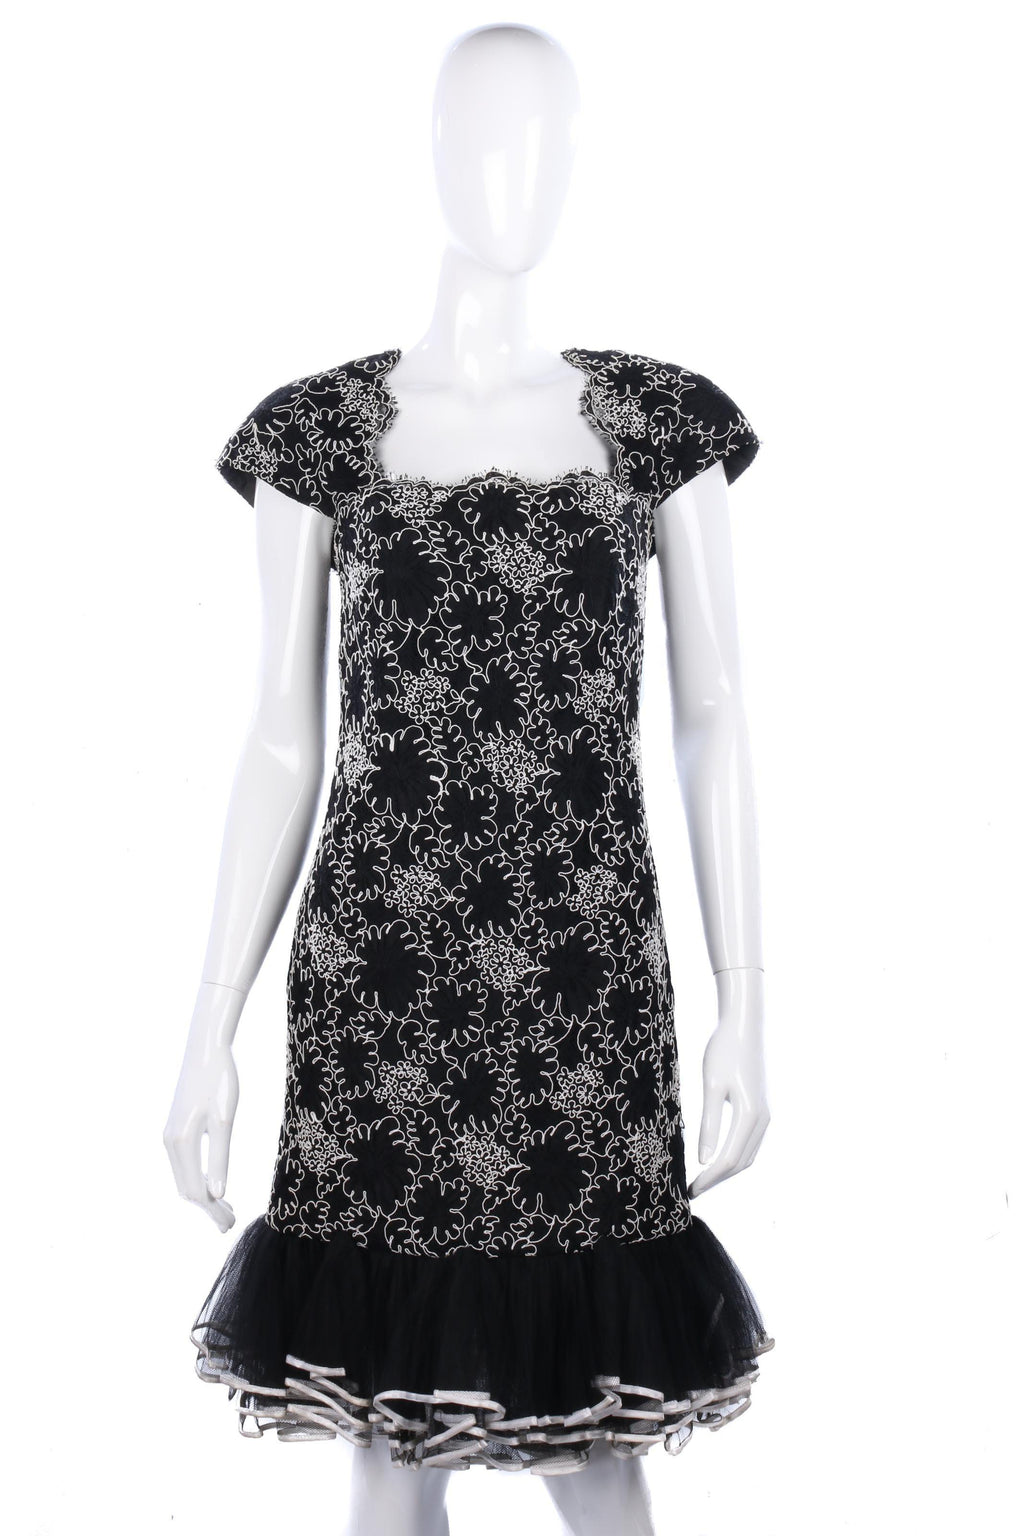 Fabulous black and white lace evening dress size S